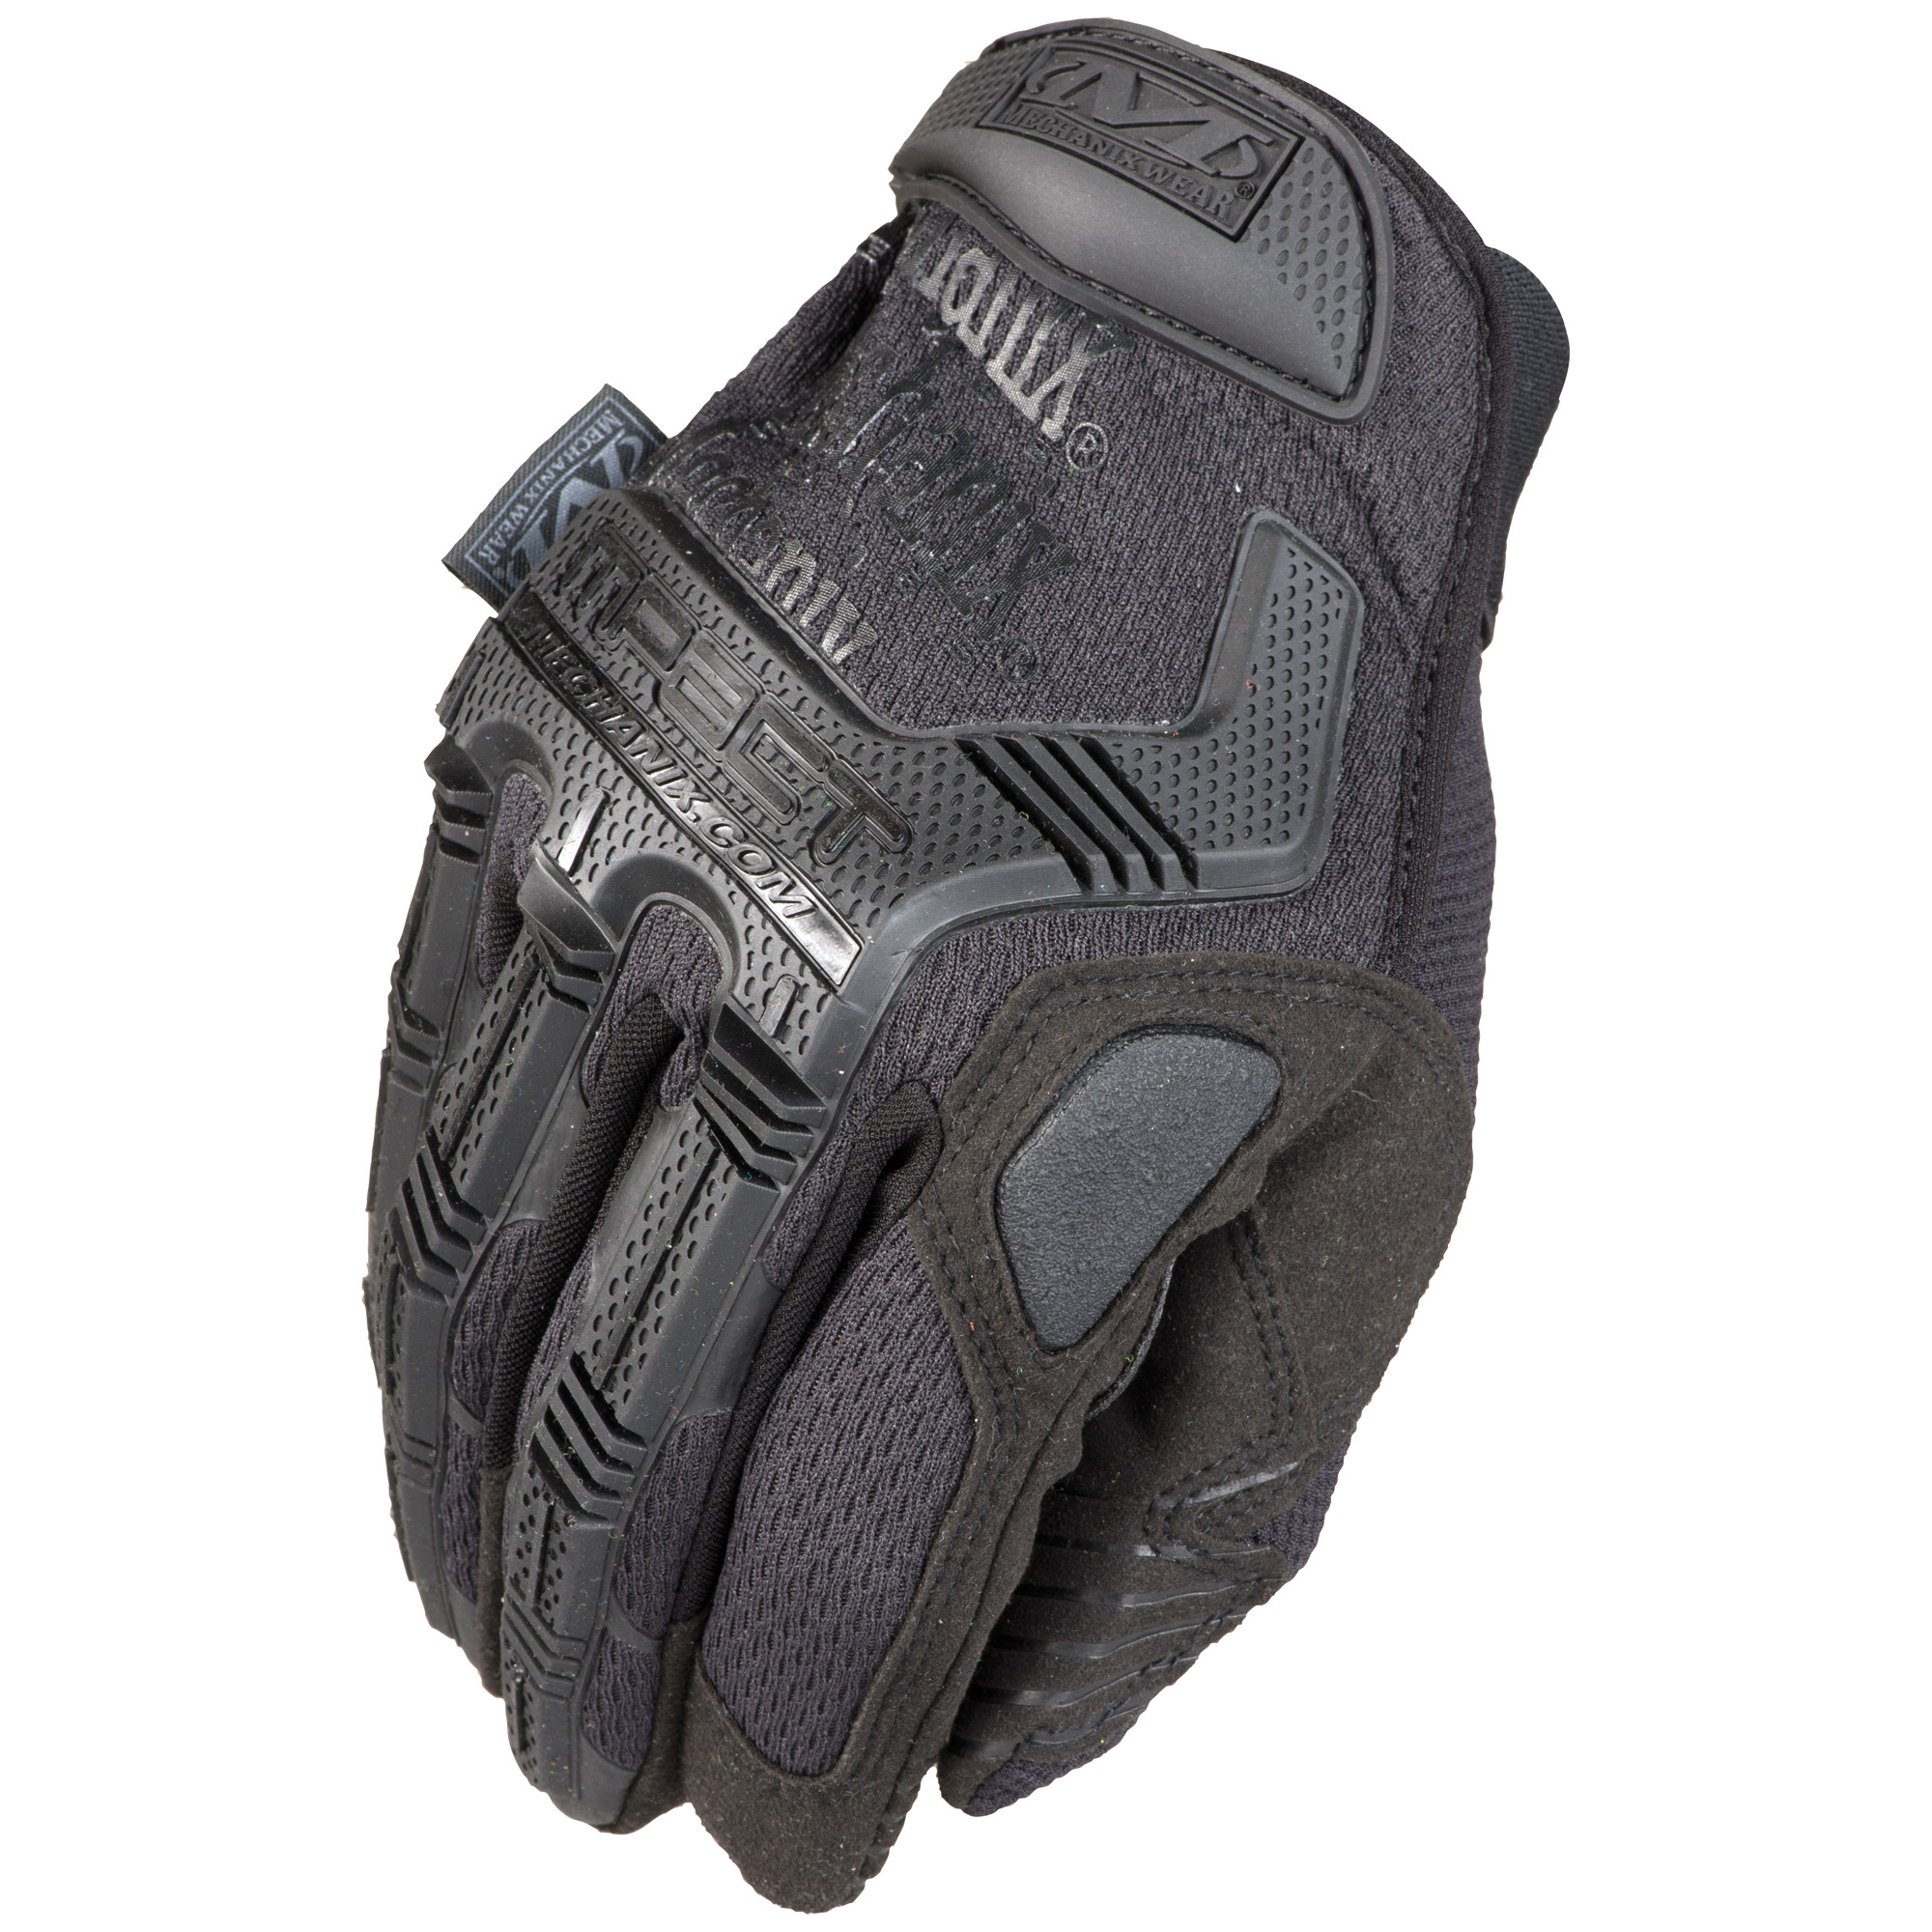 Make an M-Pact(R) in the field. The next generation of M-Pact tactical gloves protect military and law enforcement professionals with EN 13594 rated impact protection. Take control with 0.8mm synthetic leather and stay connected with touchscreen technology in the palm of your hands. The M-Pact features D3O(R) palm padding to dissipate high-impact energy and reduce hand fatigue.